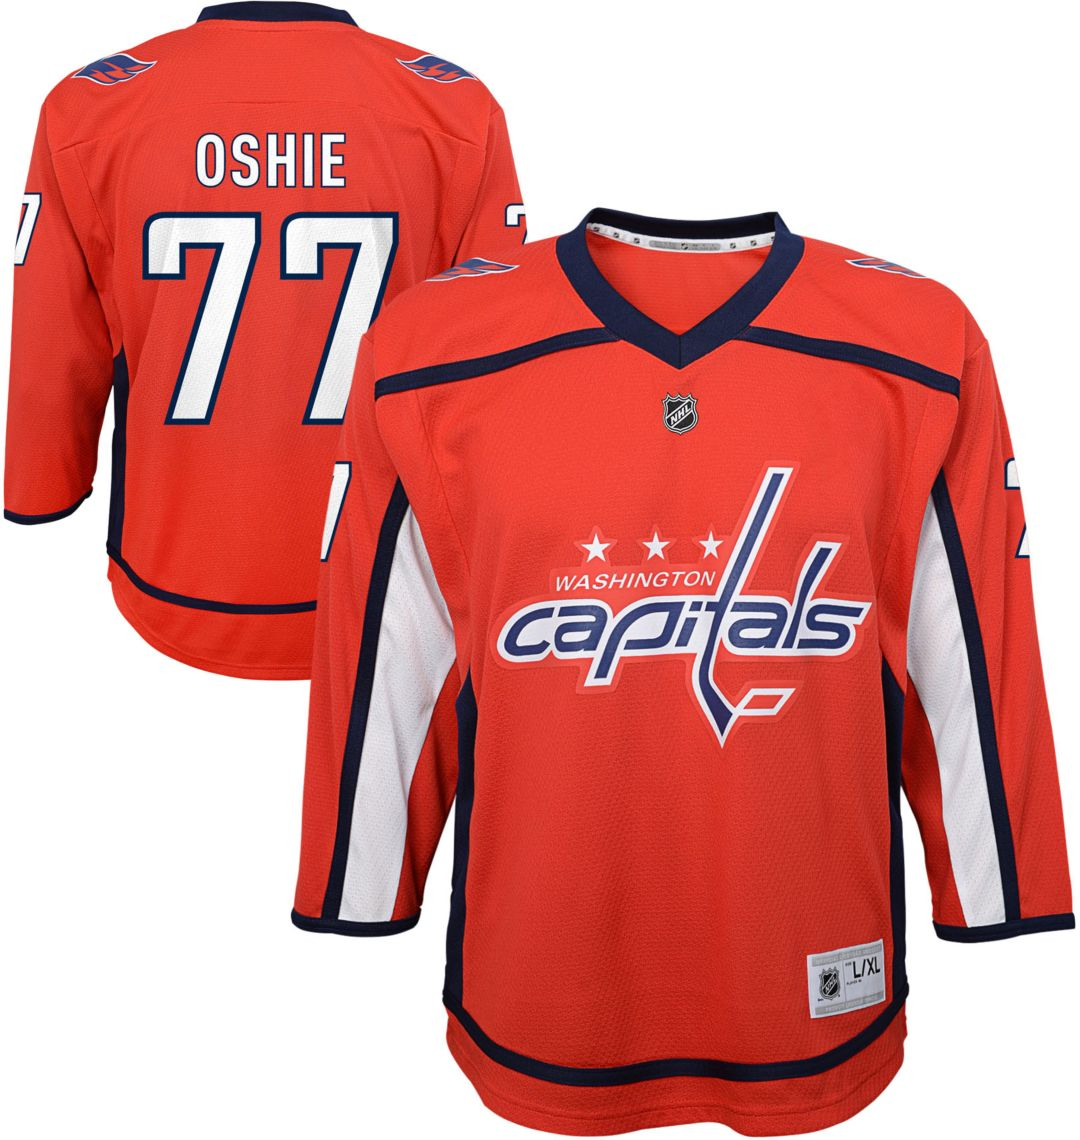 competitive price 54785 2b3da NHL Youth Washington Capitals T.J. Oshie #77 Replica Home Jersey